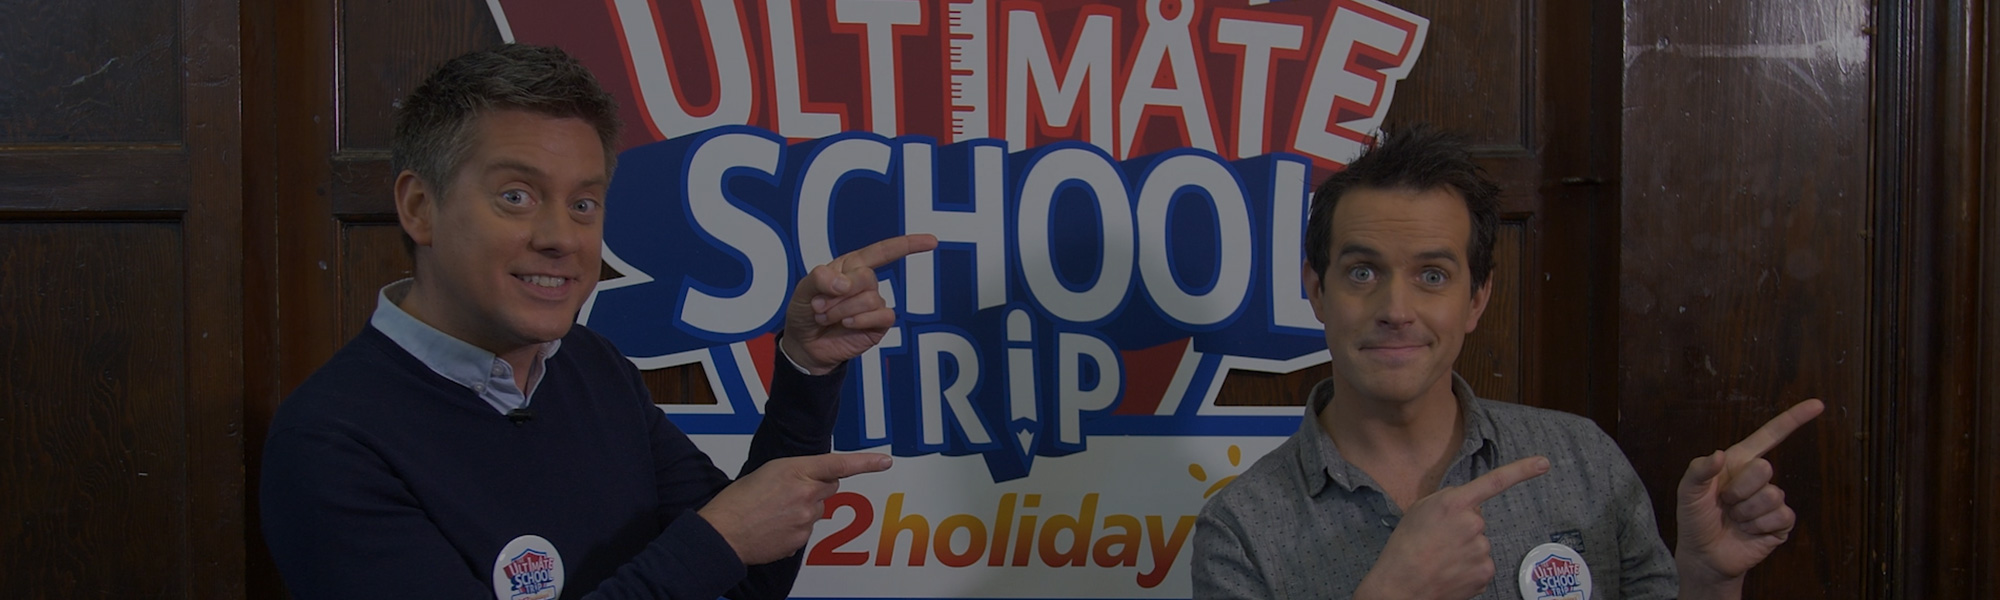 Jet2 Ultimate School Trip Competition